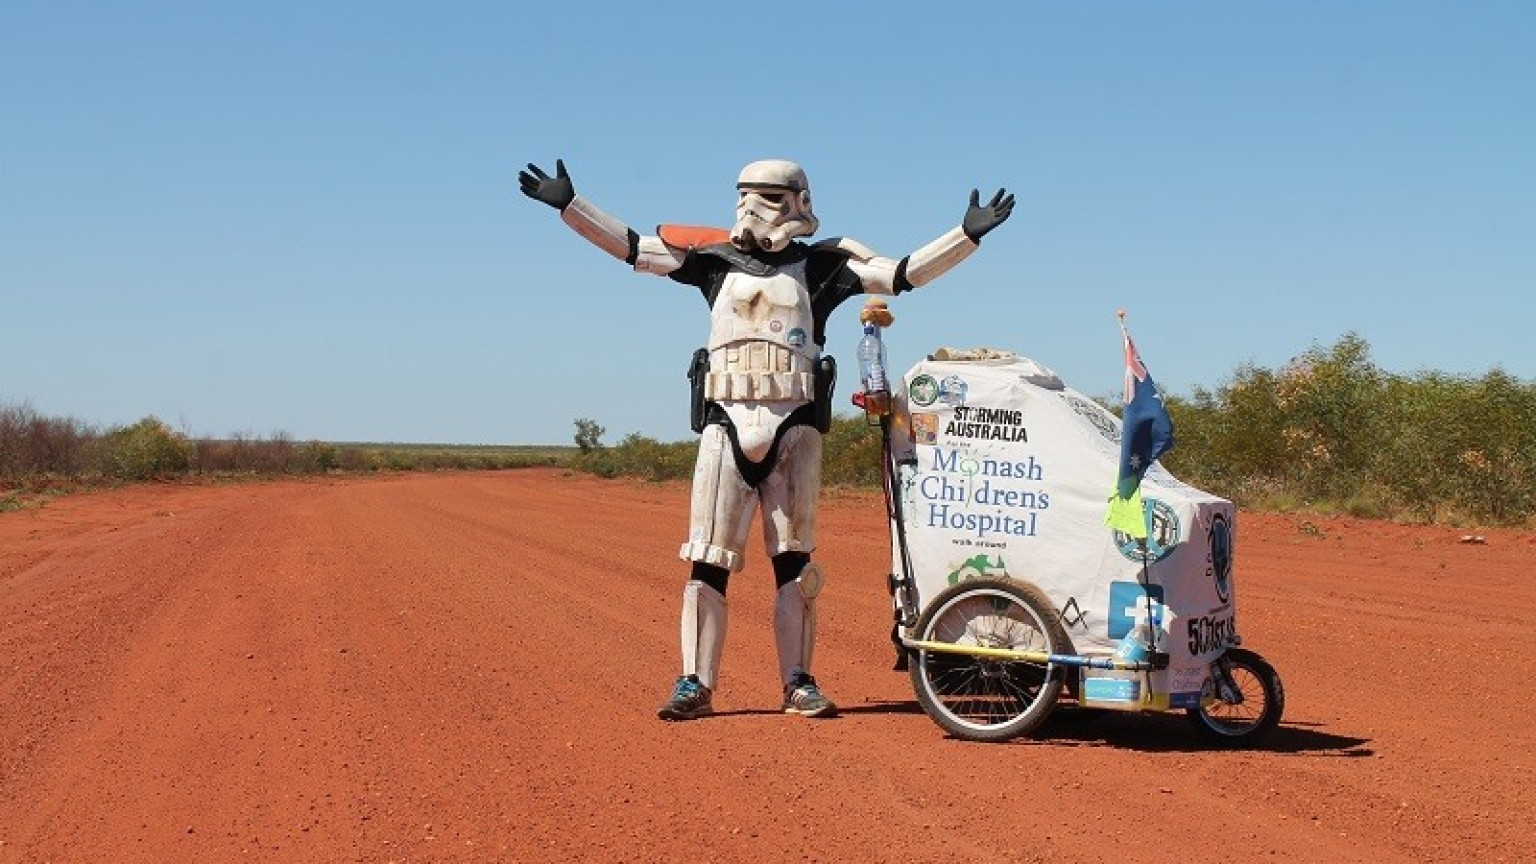 Scott Loxley in stormtrooper armor walking down a path.